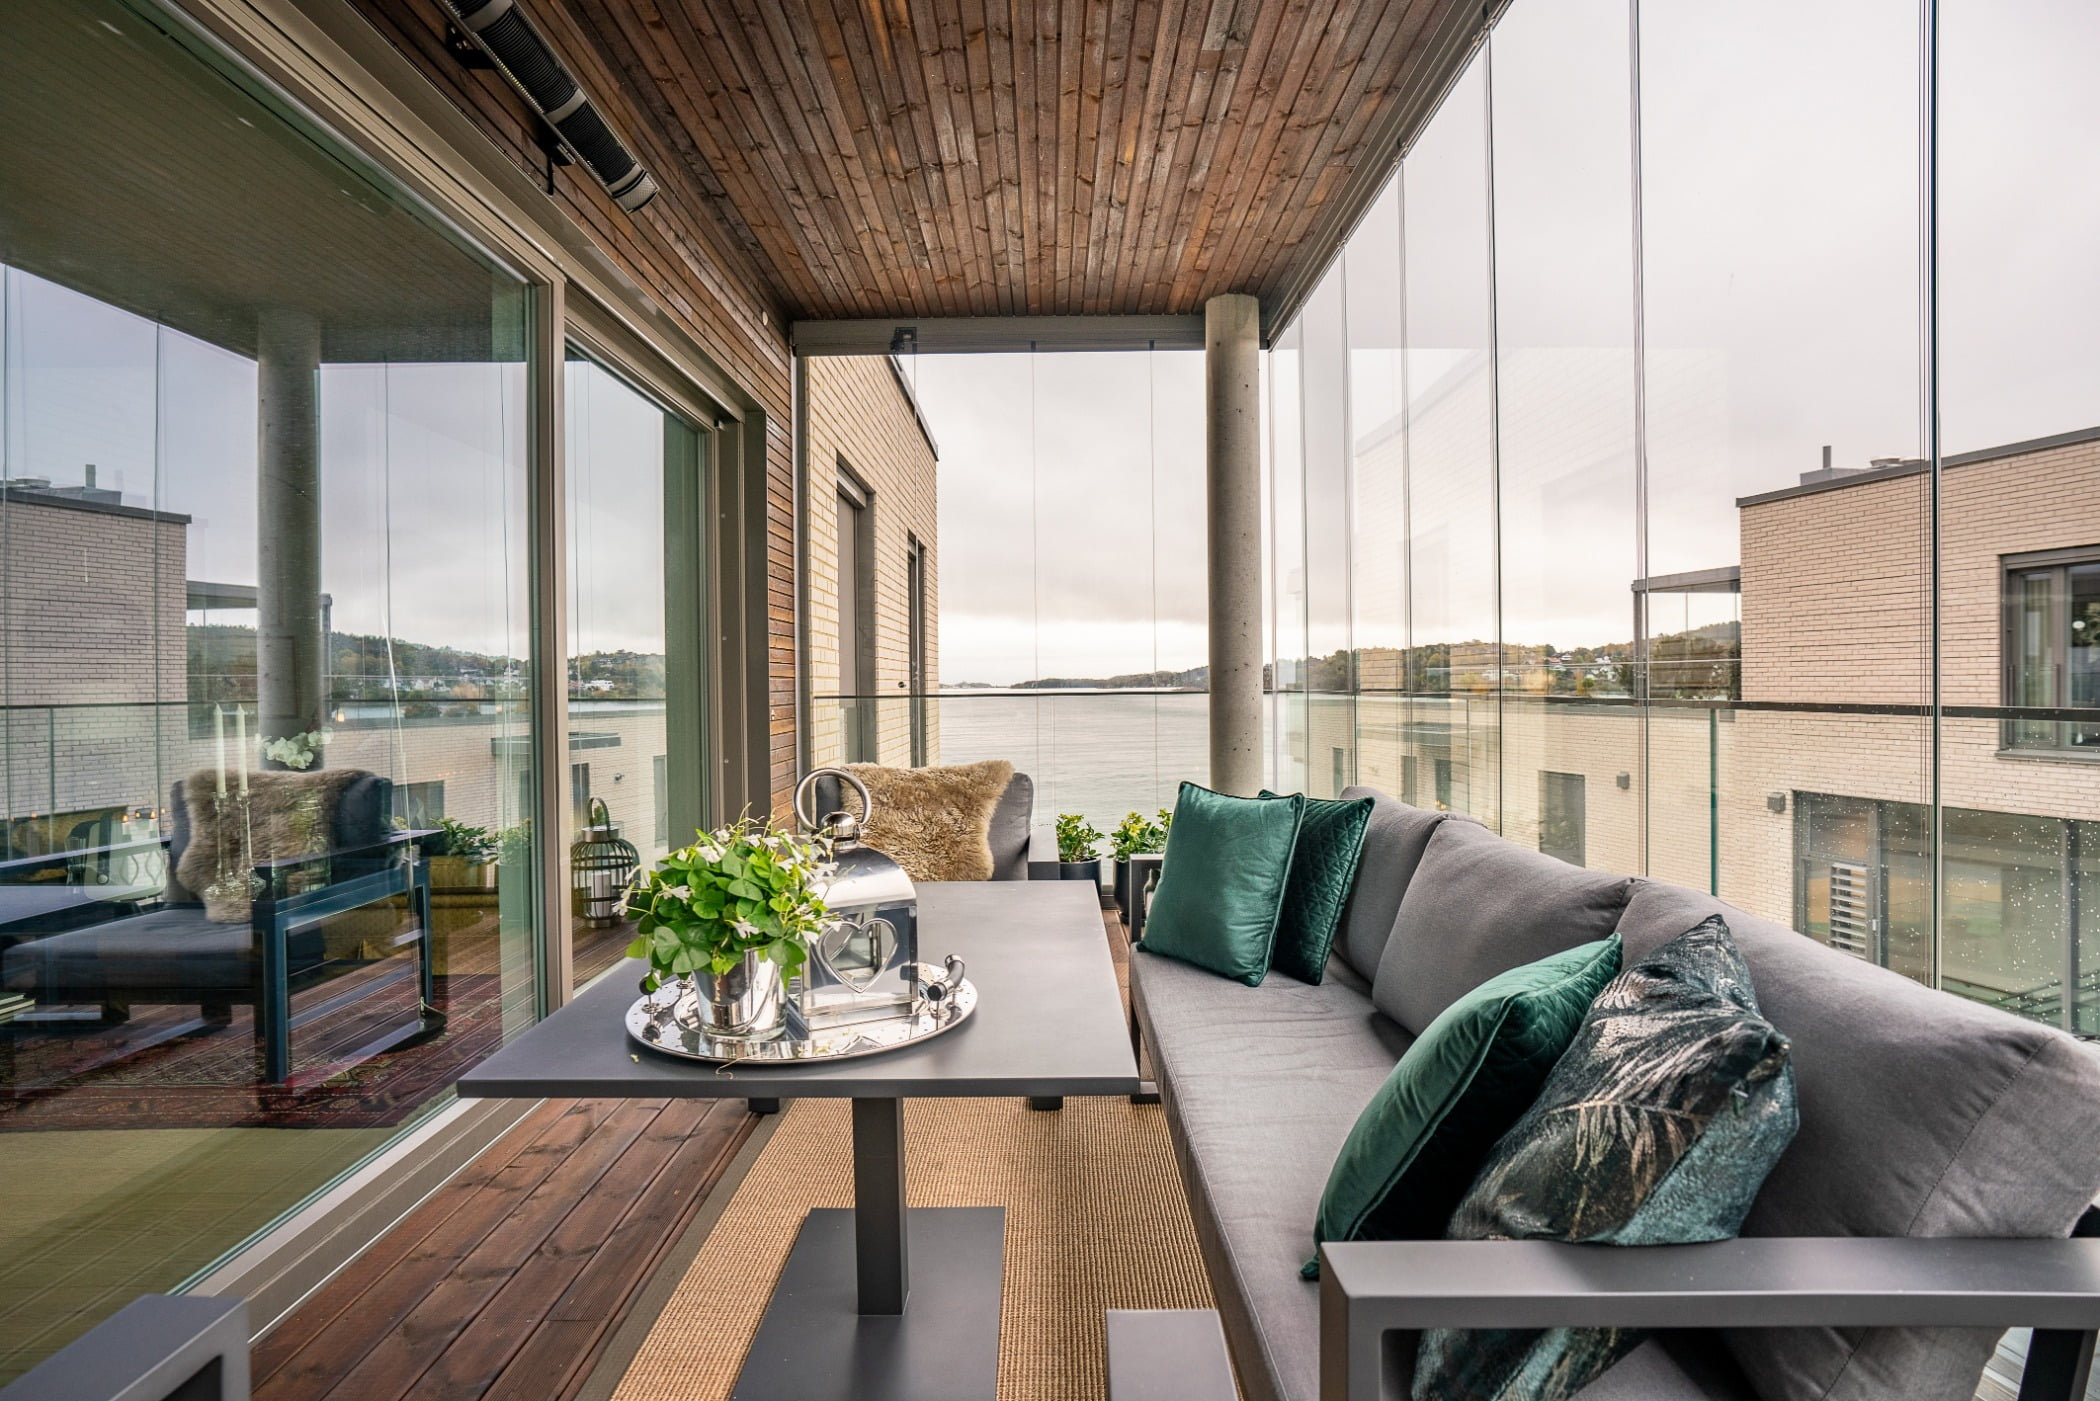 Furniture, Sky, Property, Couch, Building, Table, Flowerpot, Plant, Comfort, Wood